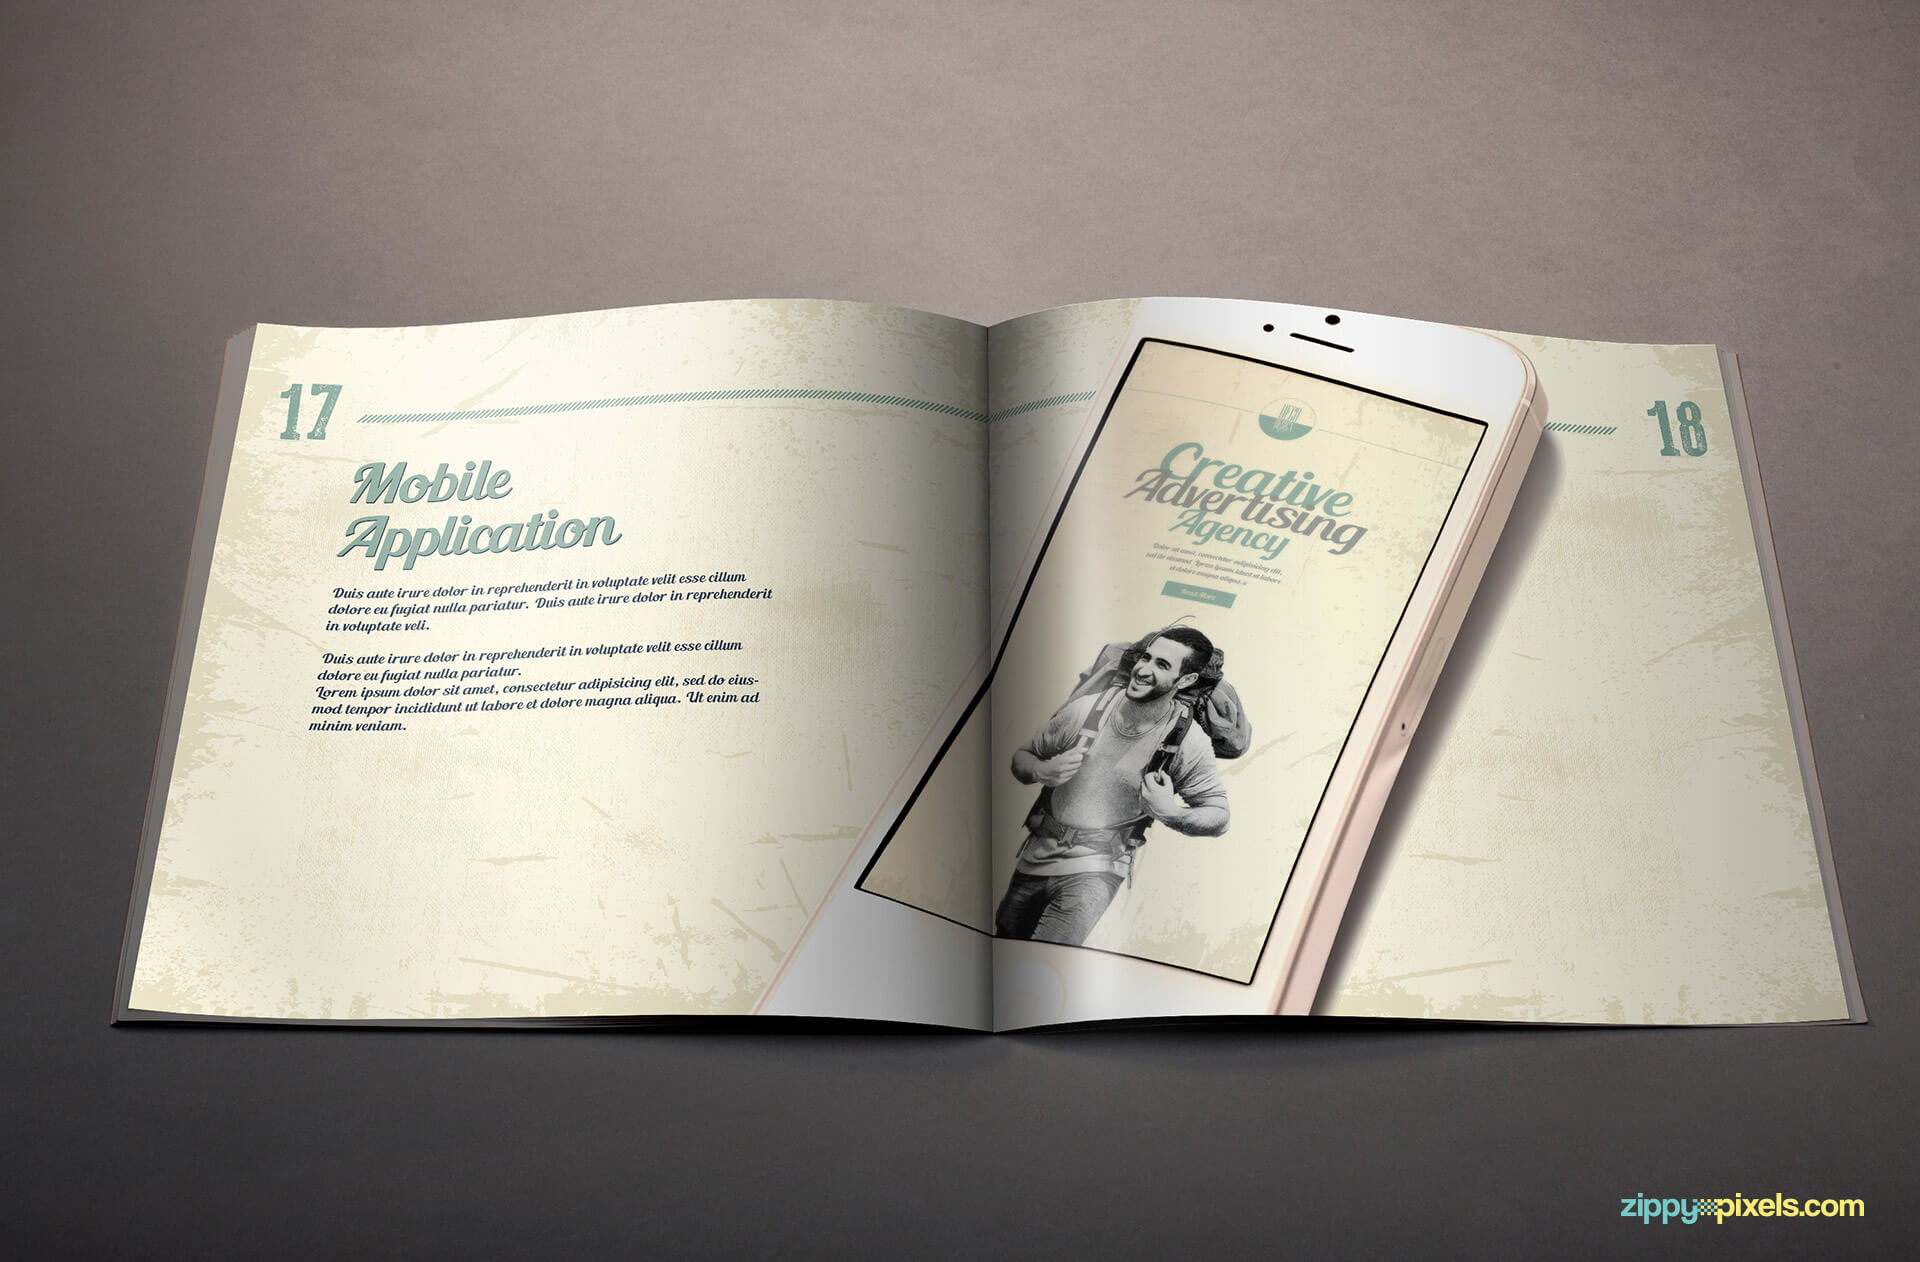 15-brand-book-13-mobile-application